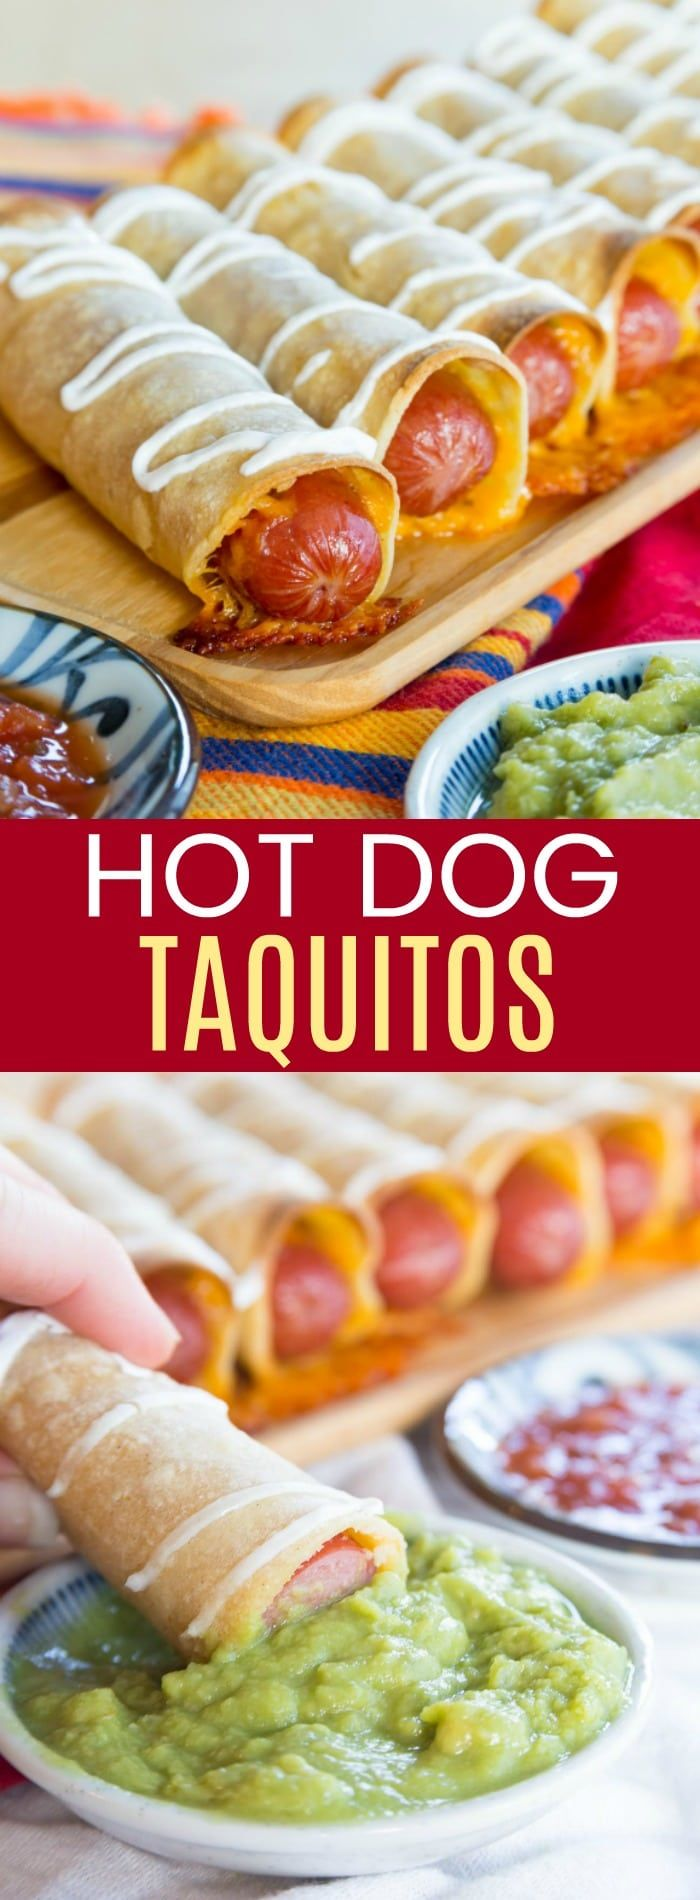 Cheesy Hot Dog Taquitos are a Mexican-inspired twist on the usual wrapped hot dogs, turning them into baked taquitos for an easy family-friendly dinner or fun game day snack.